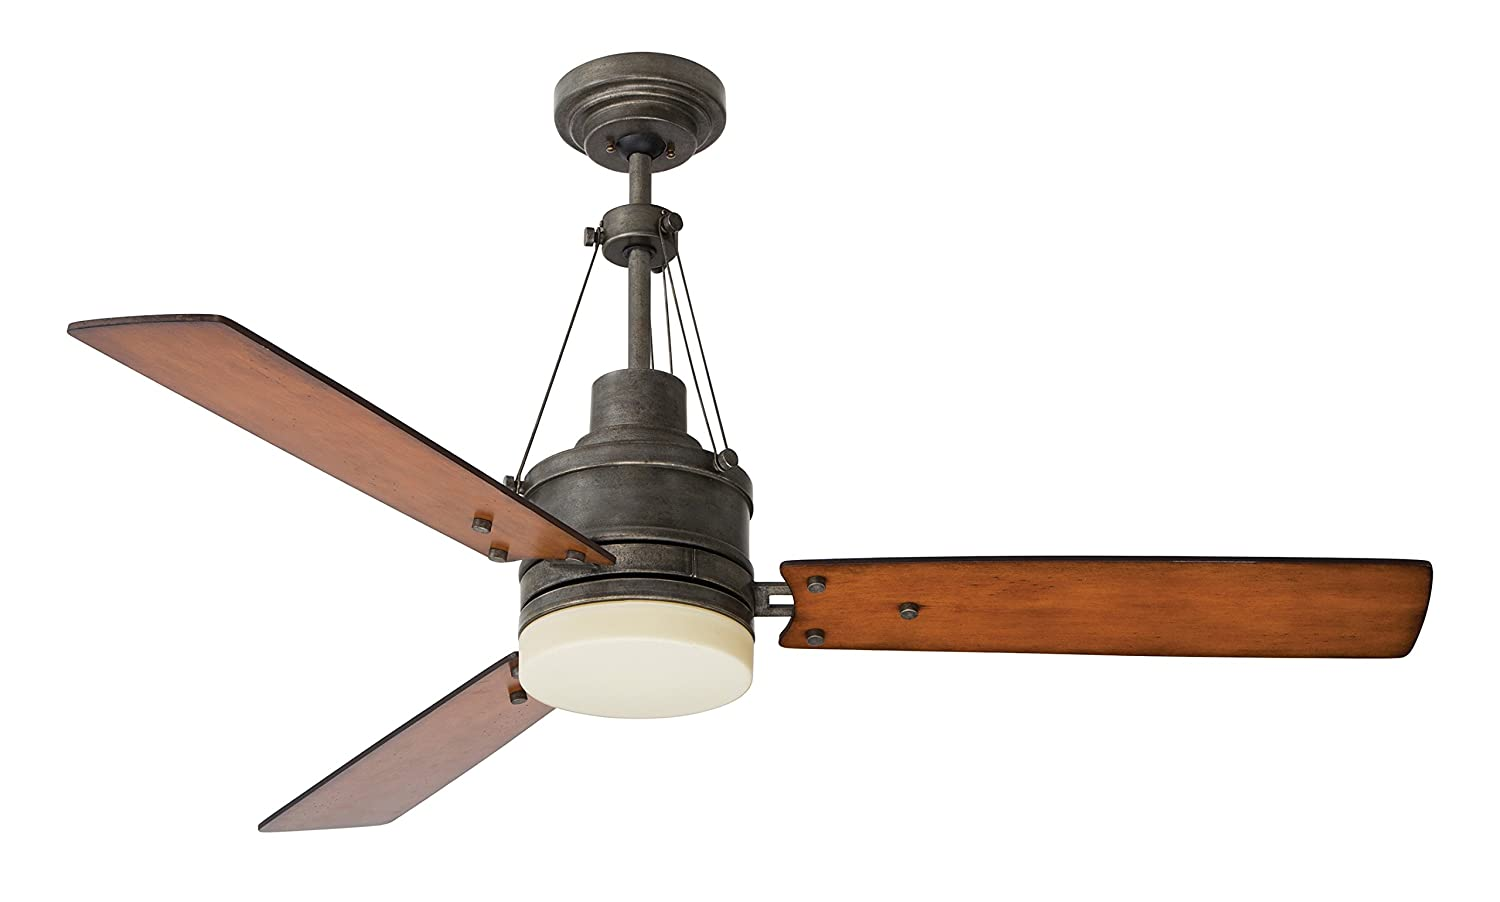 Emerson CF205LVS Highpointe 54-inch Modern Ceiling Fan, 3-Blade Ceiling Fan with LED Lighting and 4-Speed Remote Control